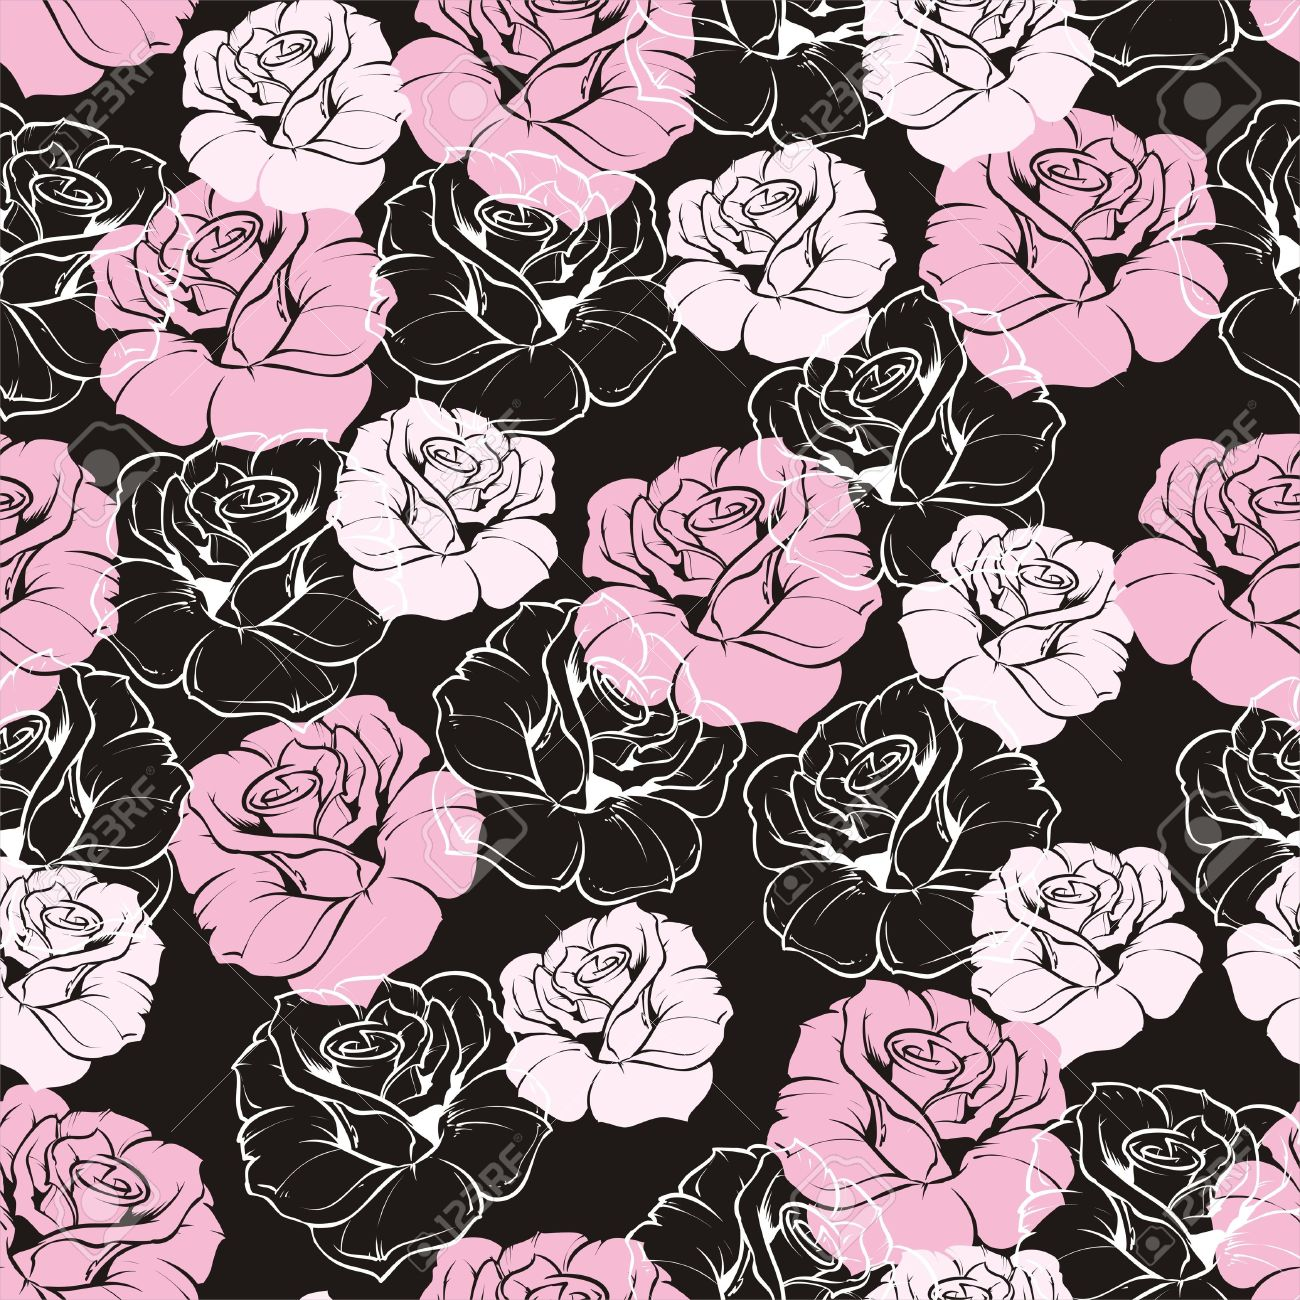 18630181 Seamless Floral Pattern With Pink And White Roses On Black